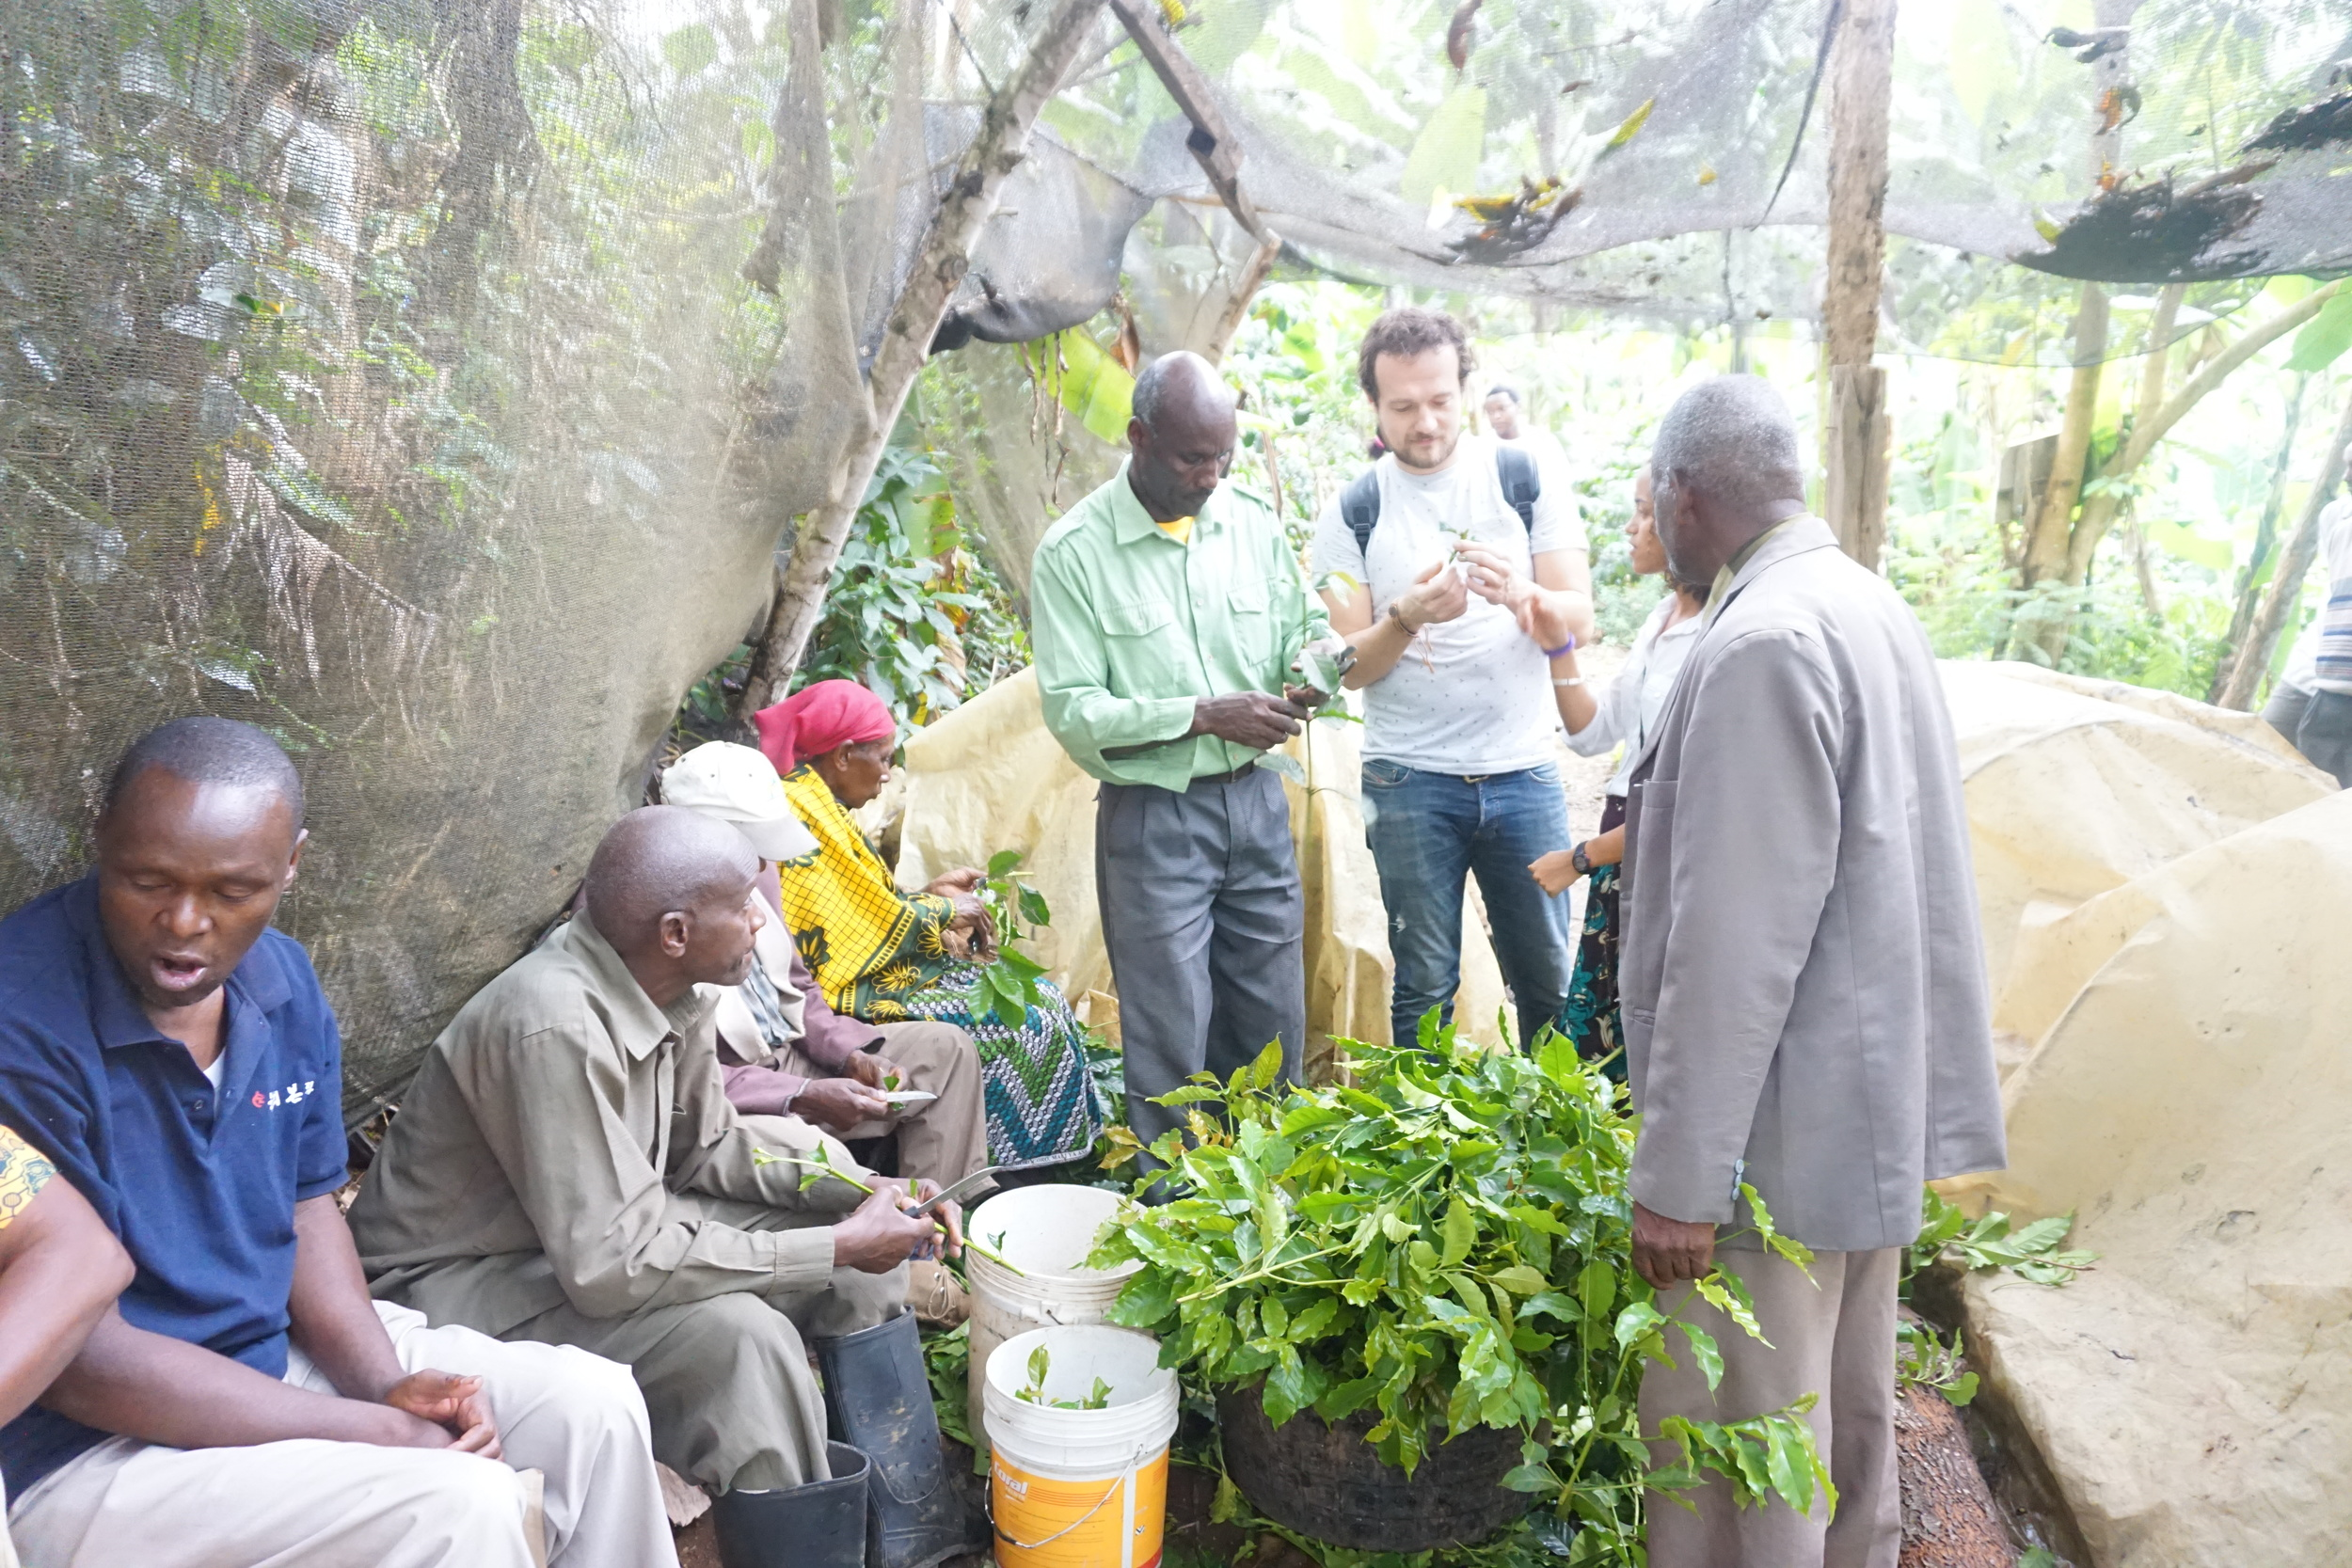 Lennart meeting the farmers and finding out exactly what stickling is. Every year, the farmers make new trees out of branches that grow vertically out of a specially bent nursing tree and plant them in a covered greenhouse.